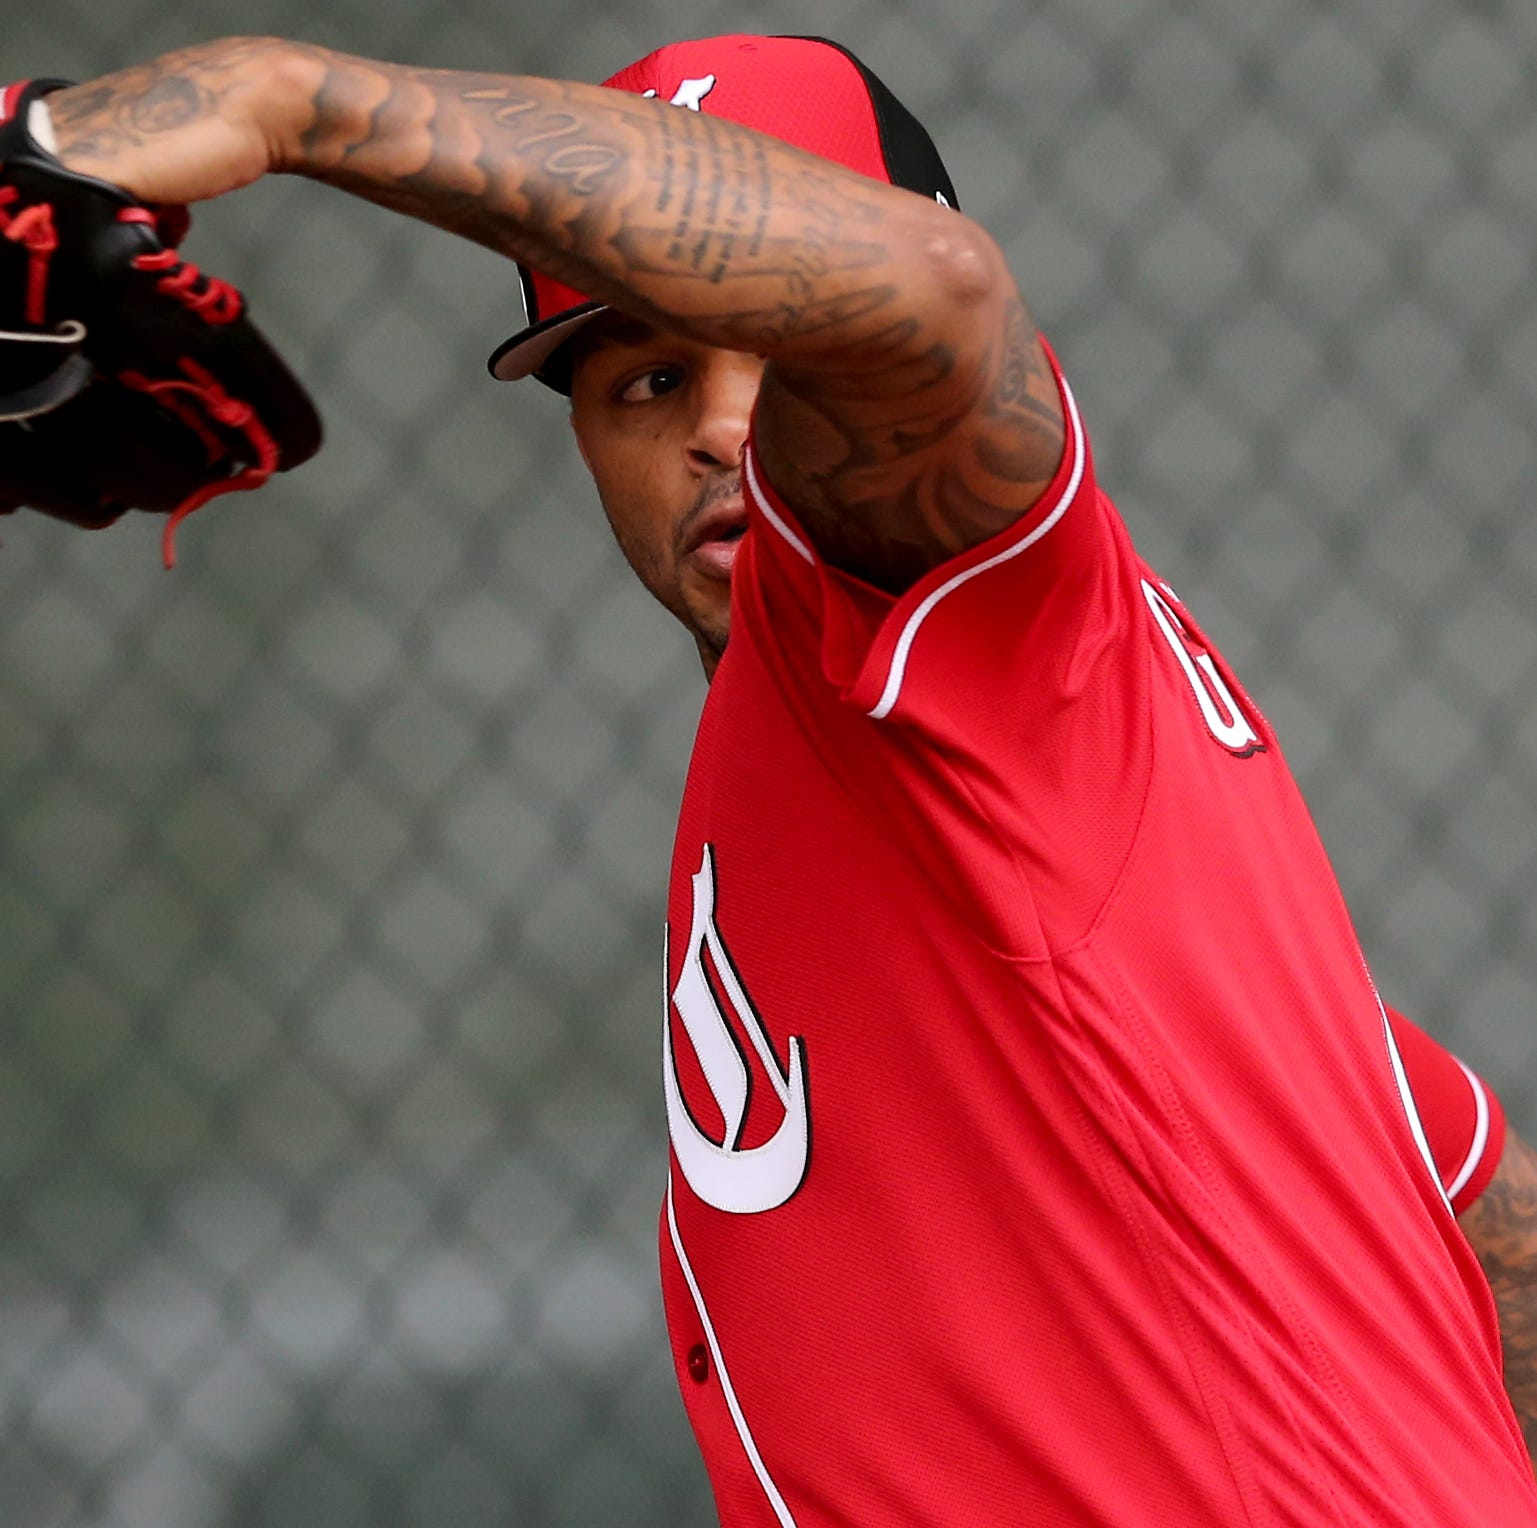 José Peraza homers in Cincinnati Reds' 8-3 spring training loss to the Kansas City Royals